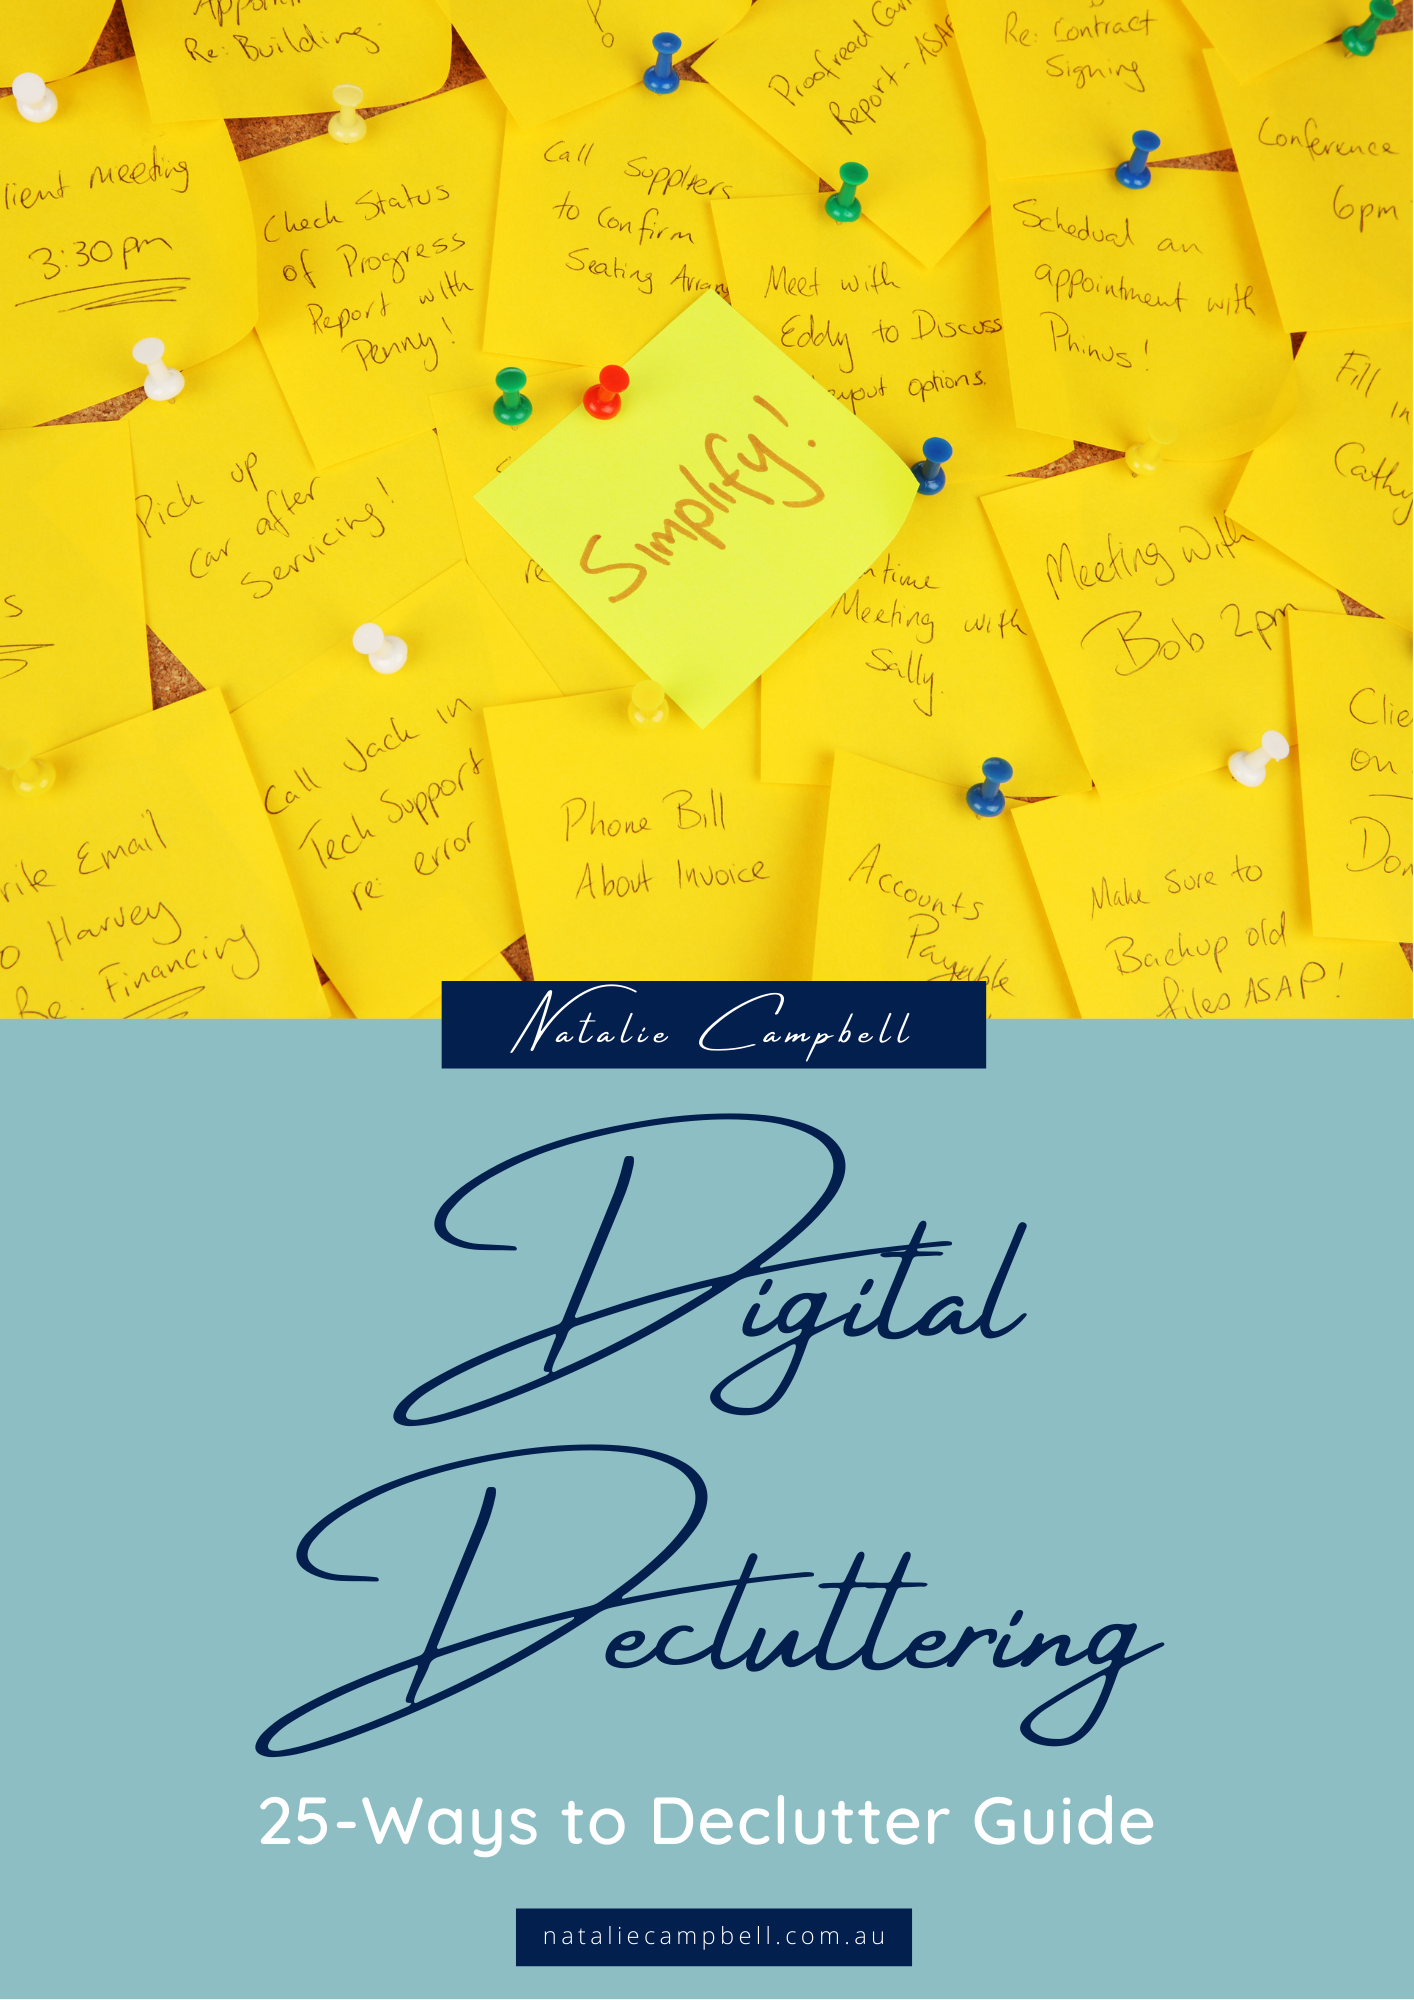 Digital Declutter Blog Featured Image | Natalie Campbell